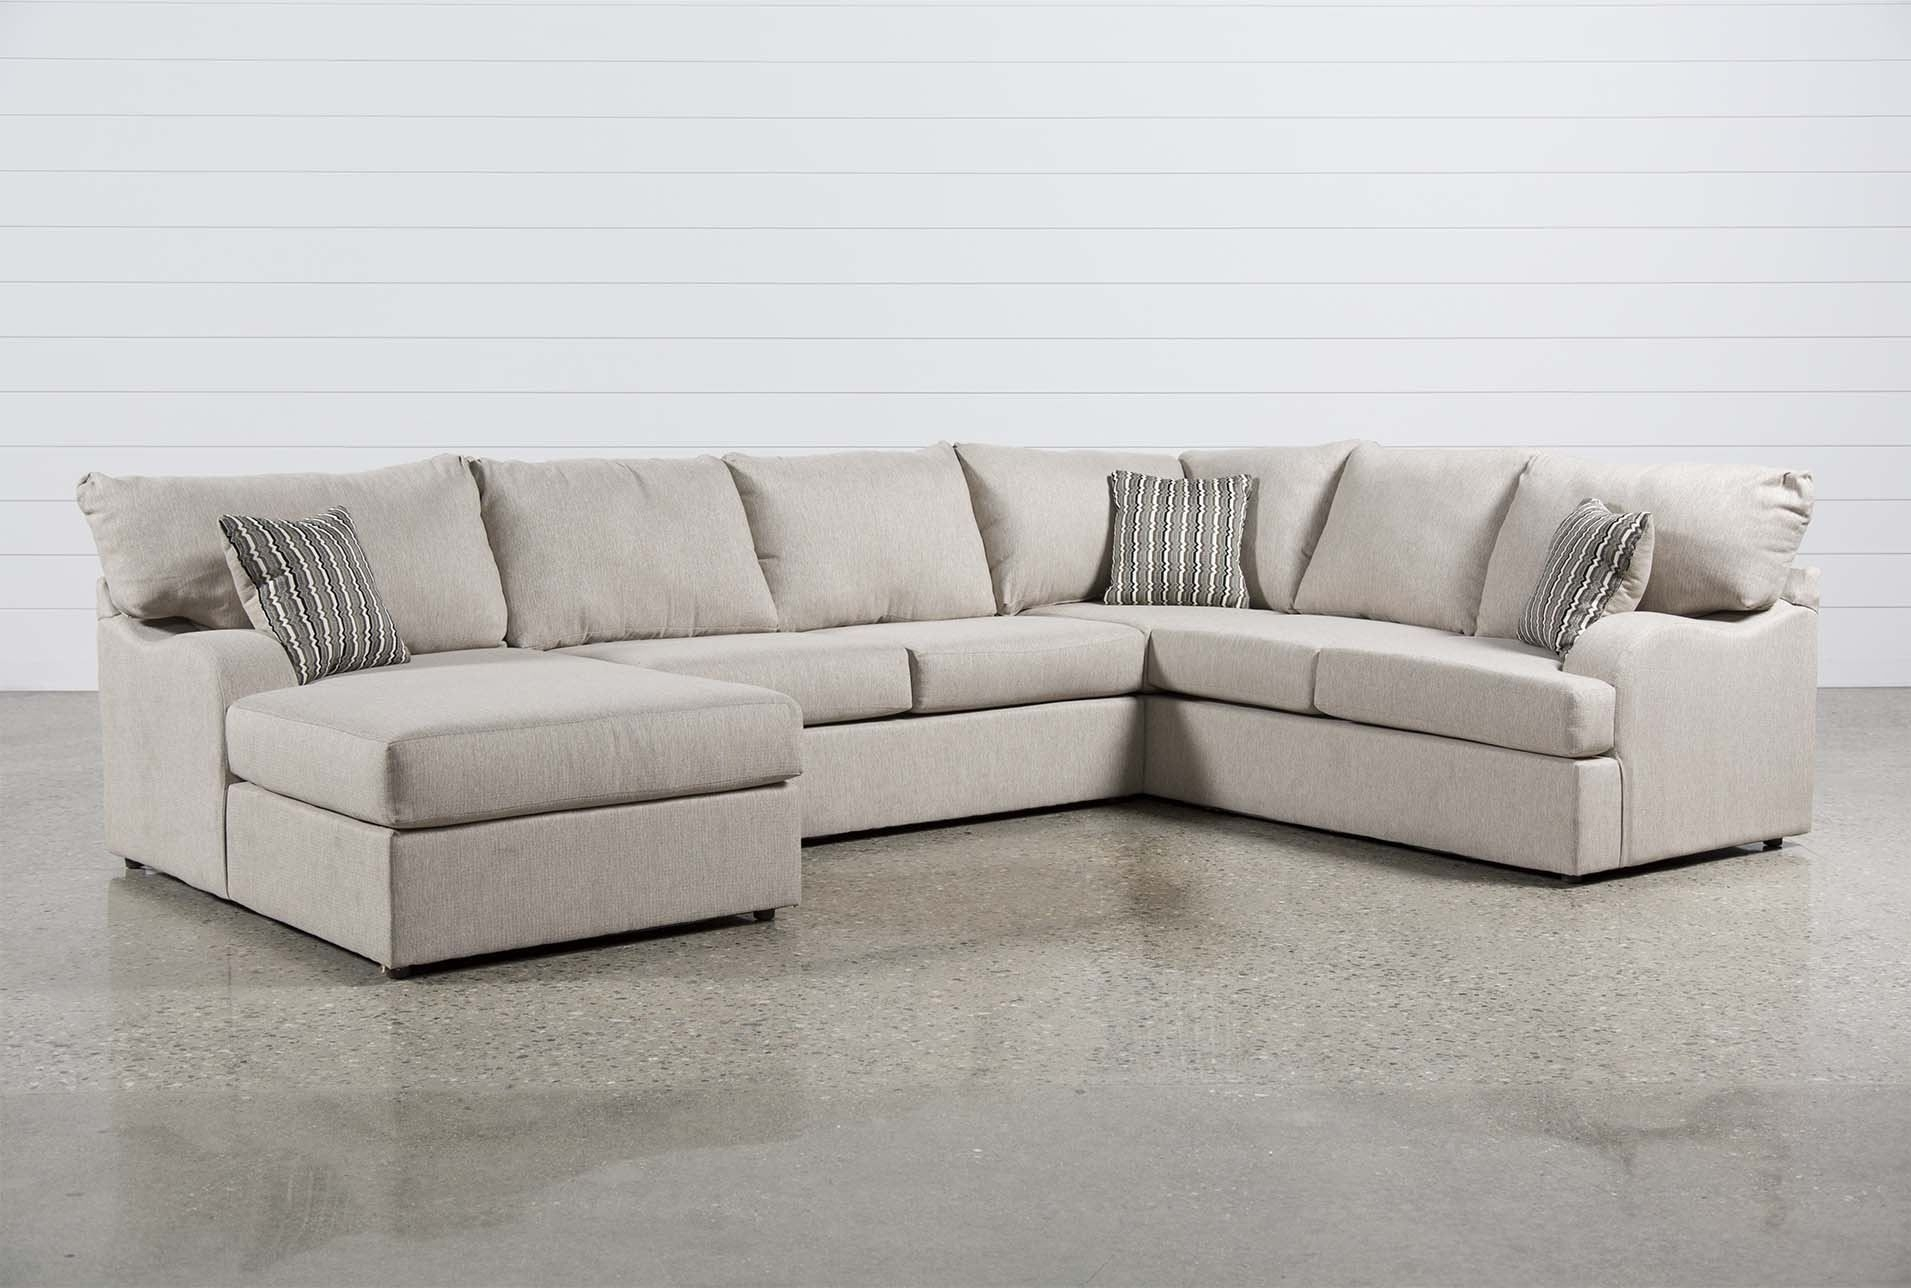 Meyer 3 Piece Sectional W/laf Chaise | Furniture | Pinterest | Beige With Regard To Glamour Ii 3 Piece Sectionals (Image 19 of 25)